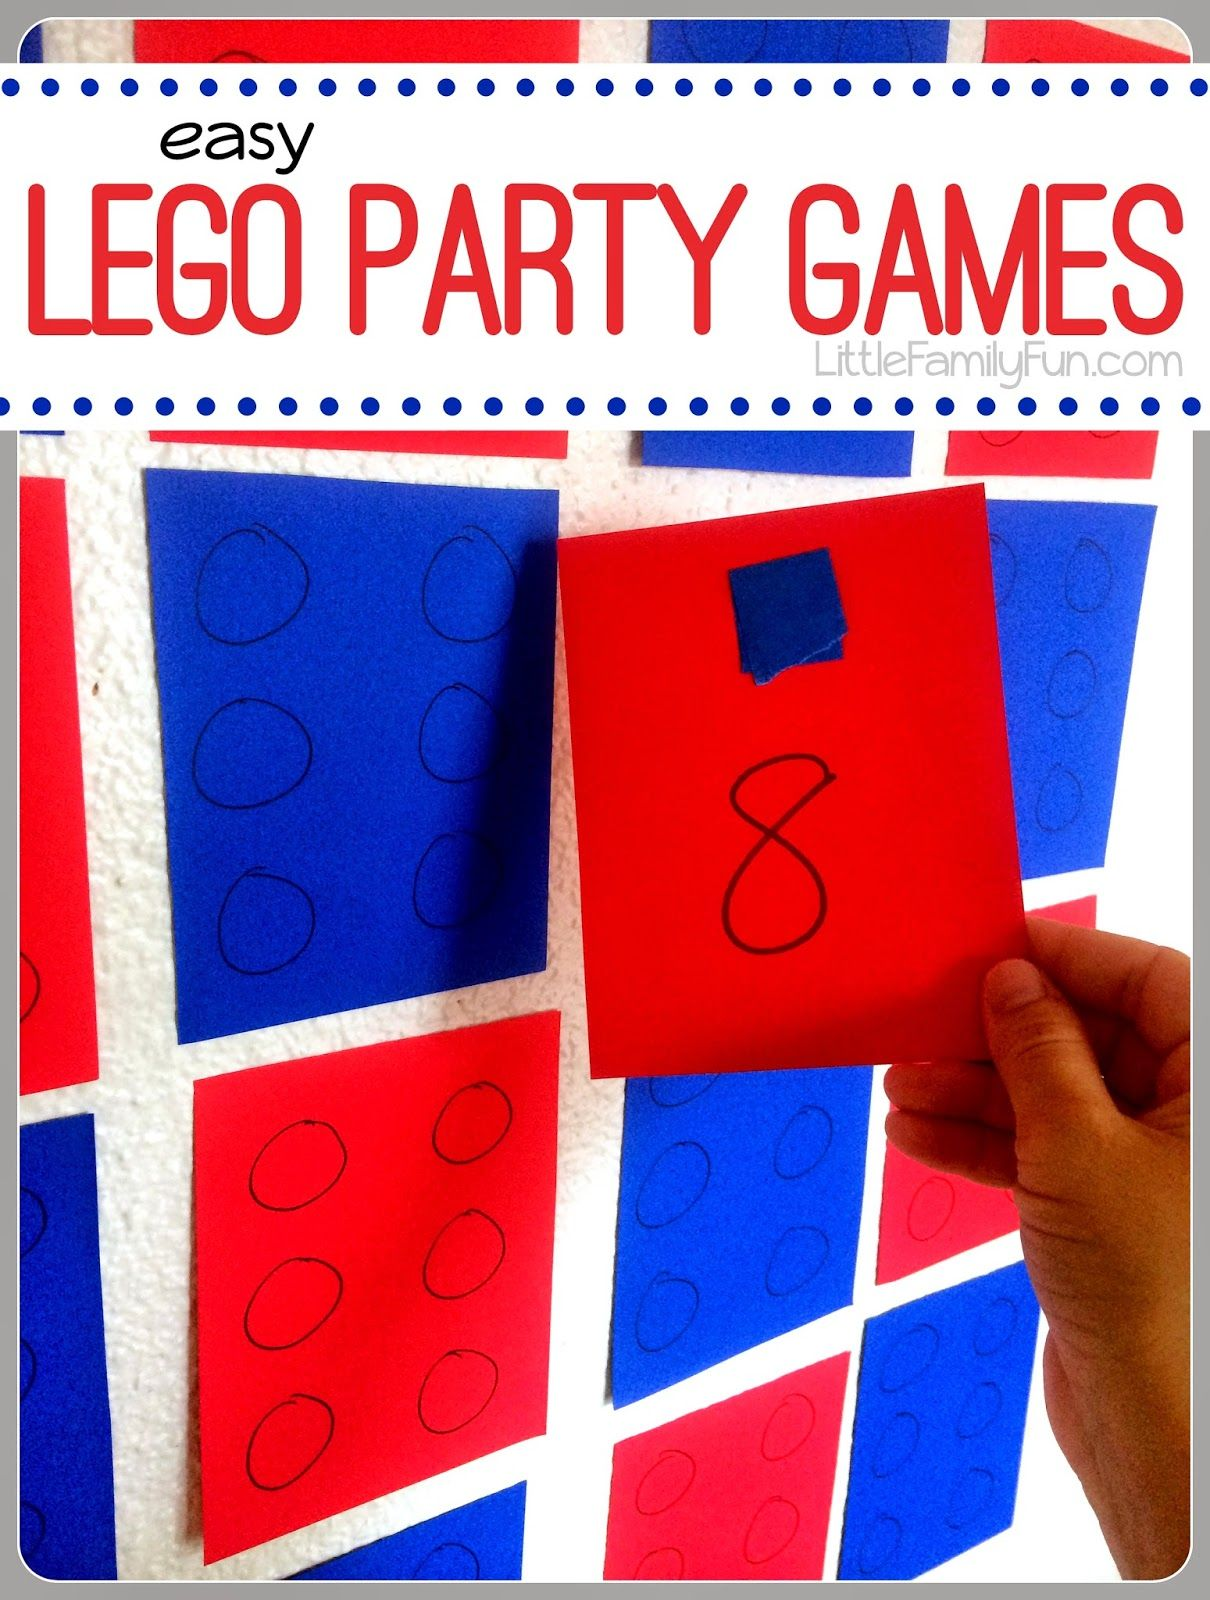 VERY simple and fun ideas for Lego Party Games Added bonus cute